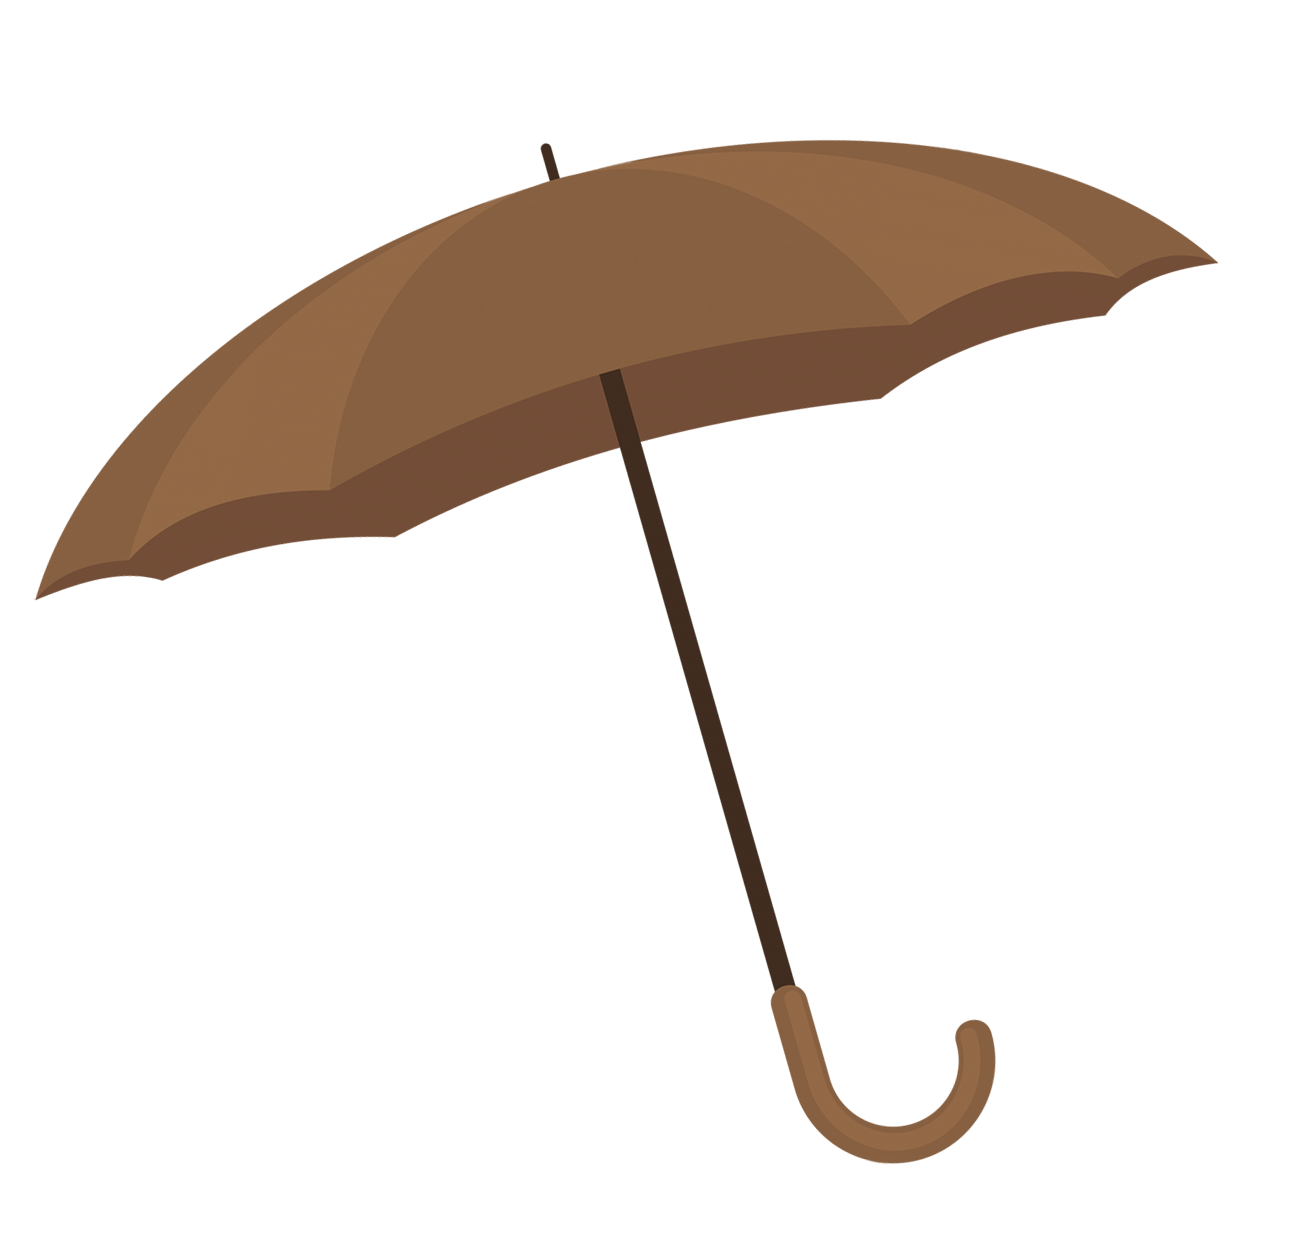 brown umbrella clipart